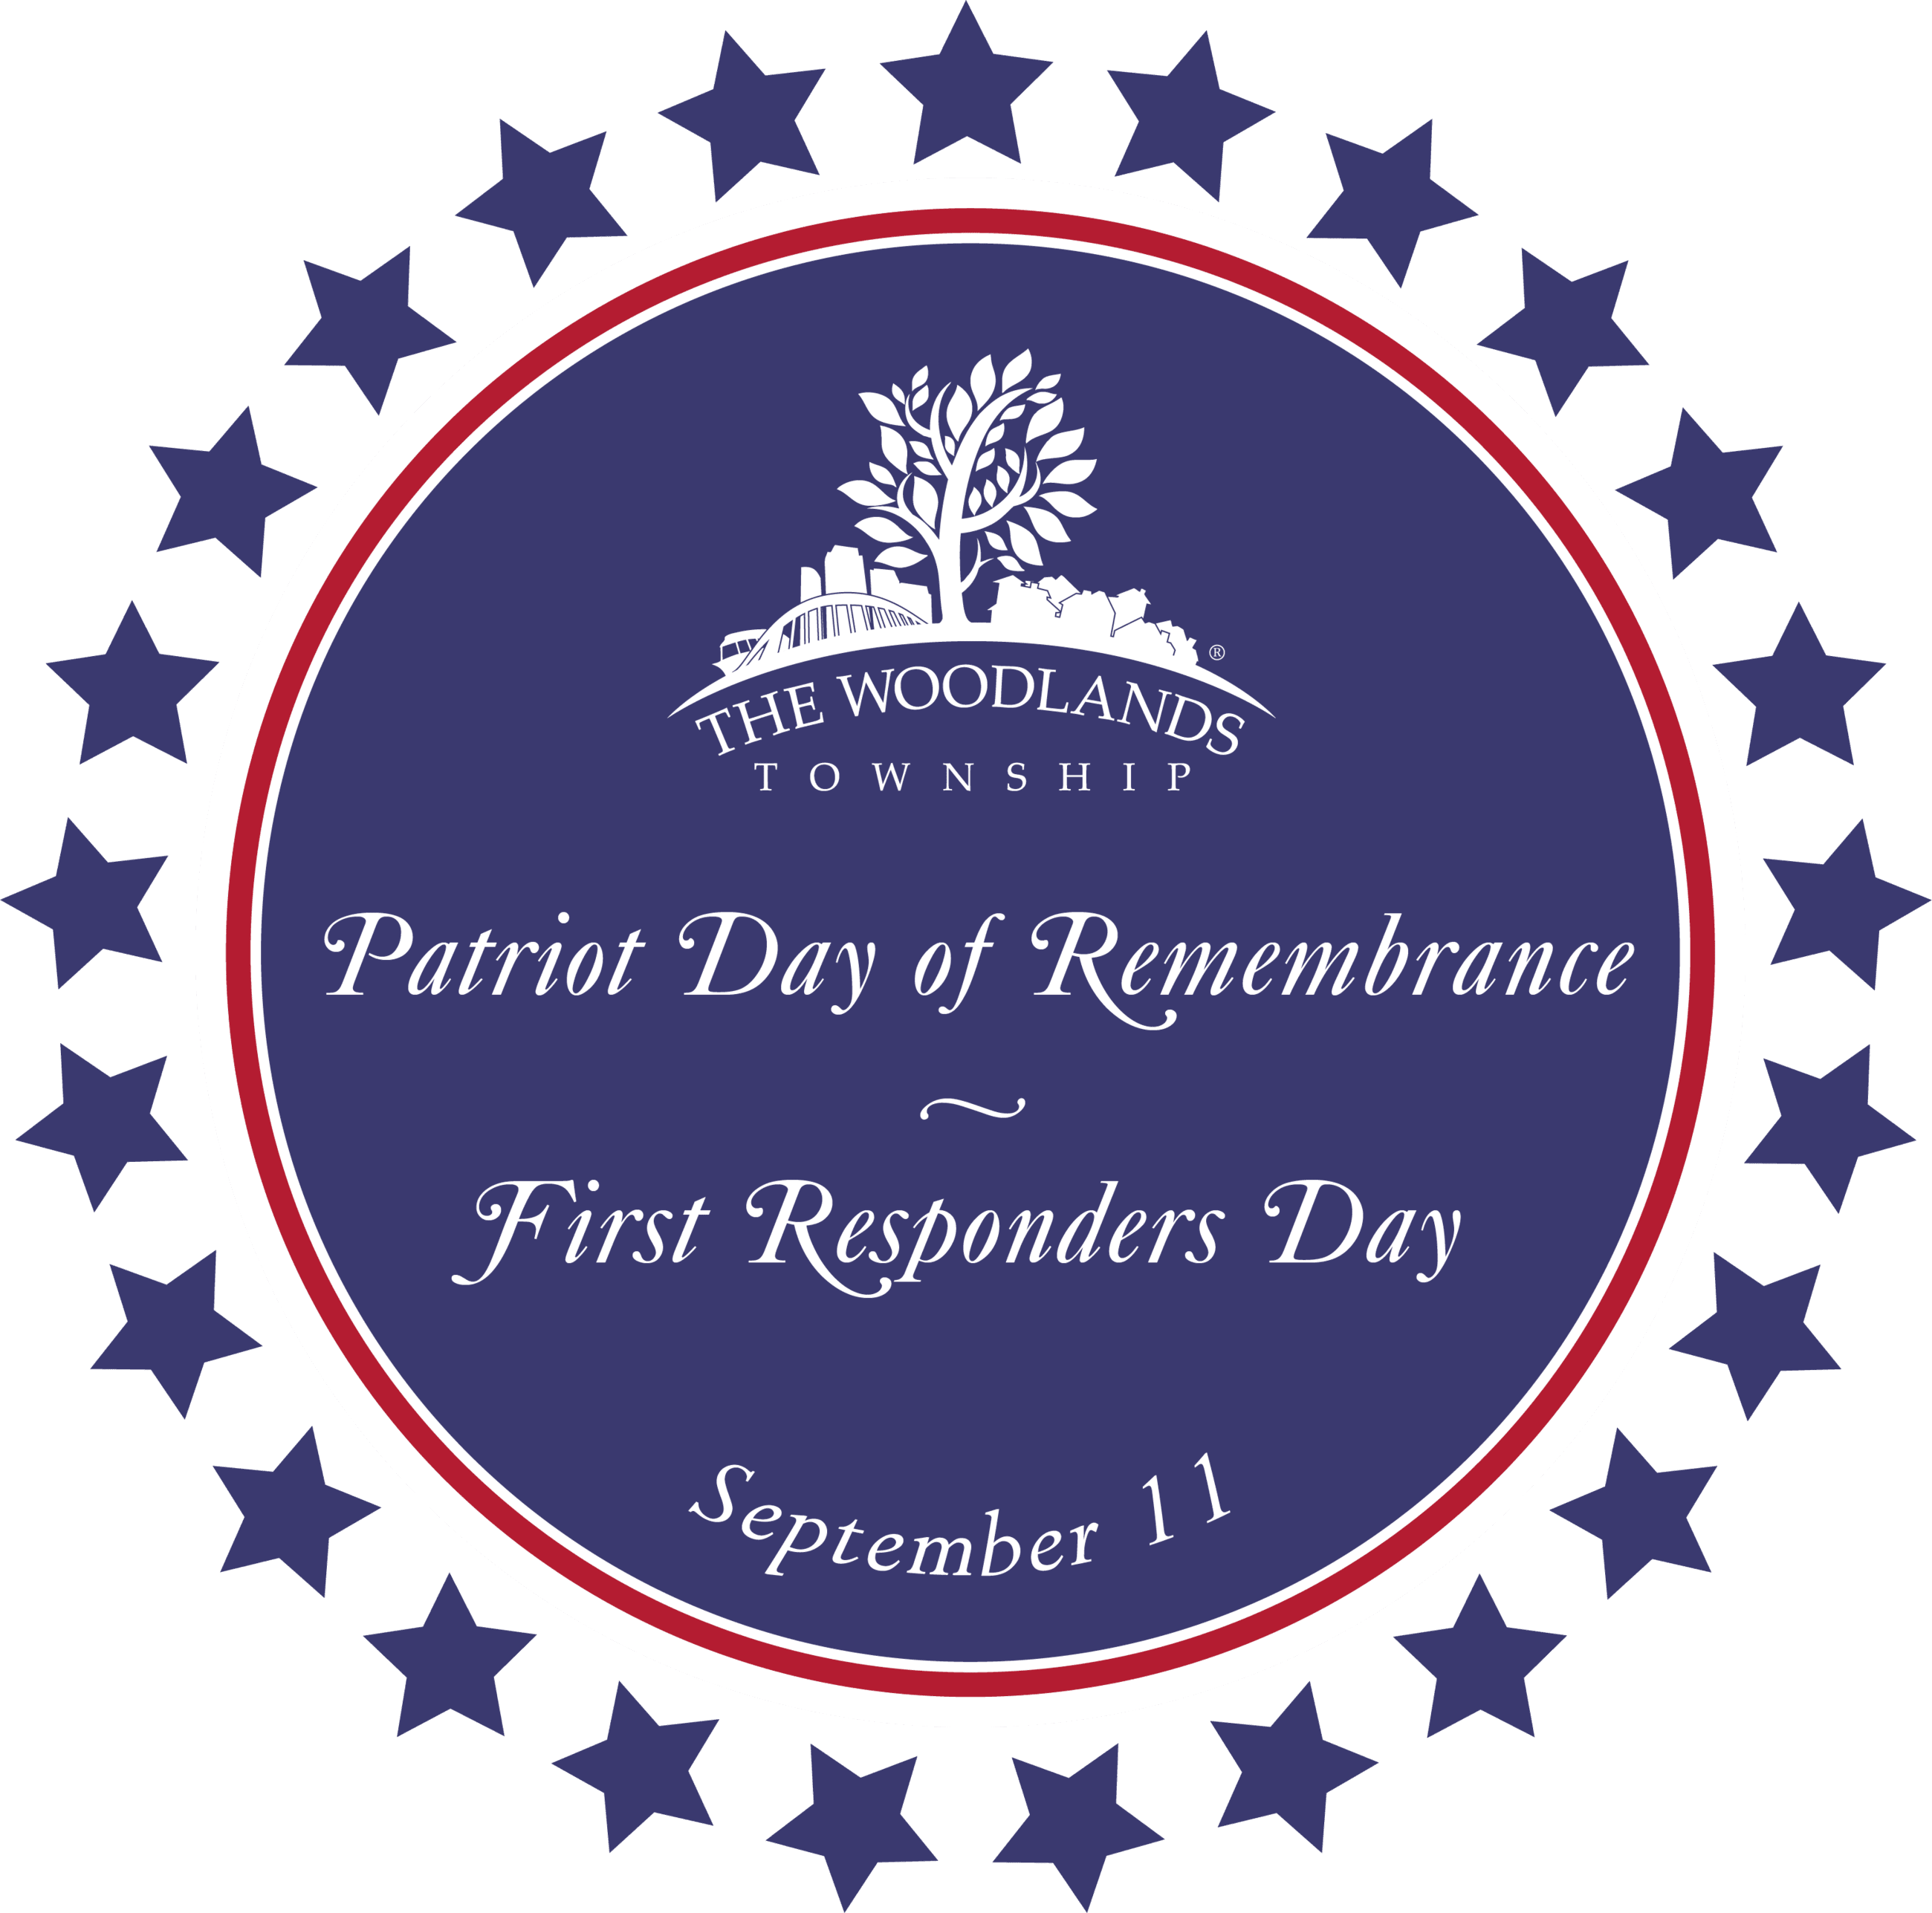 The Woodlands Township to host Patriot Day, First Responders Day